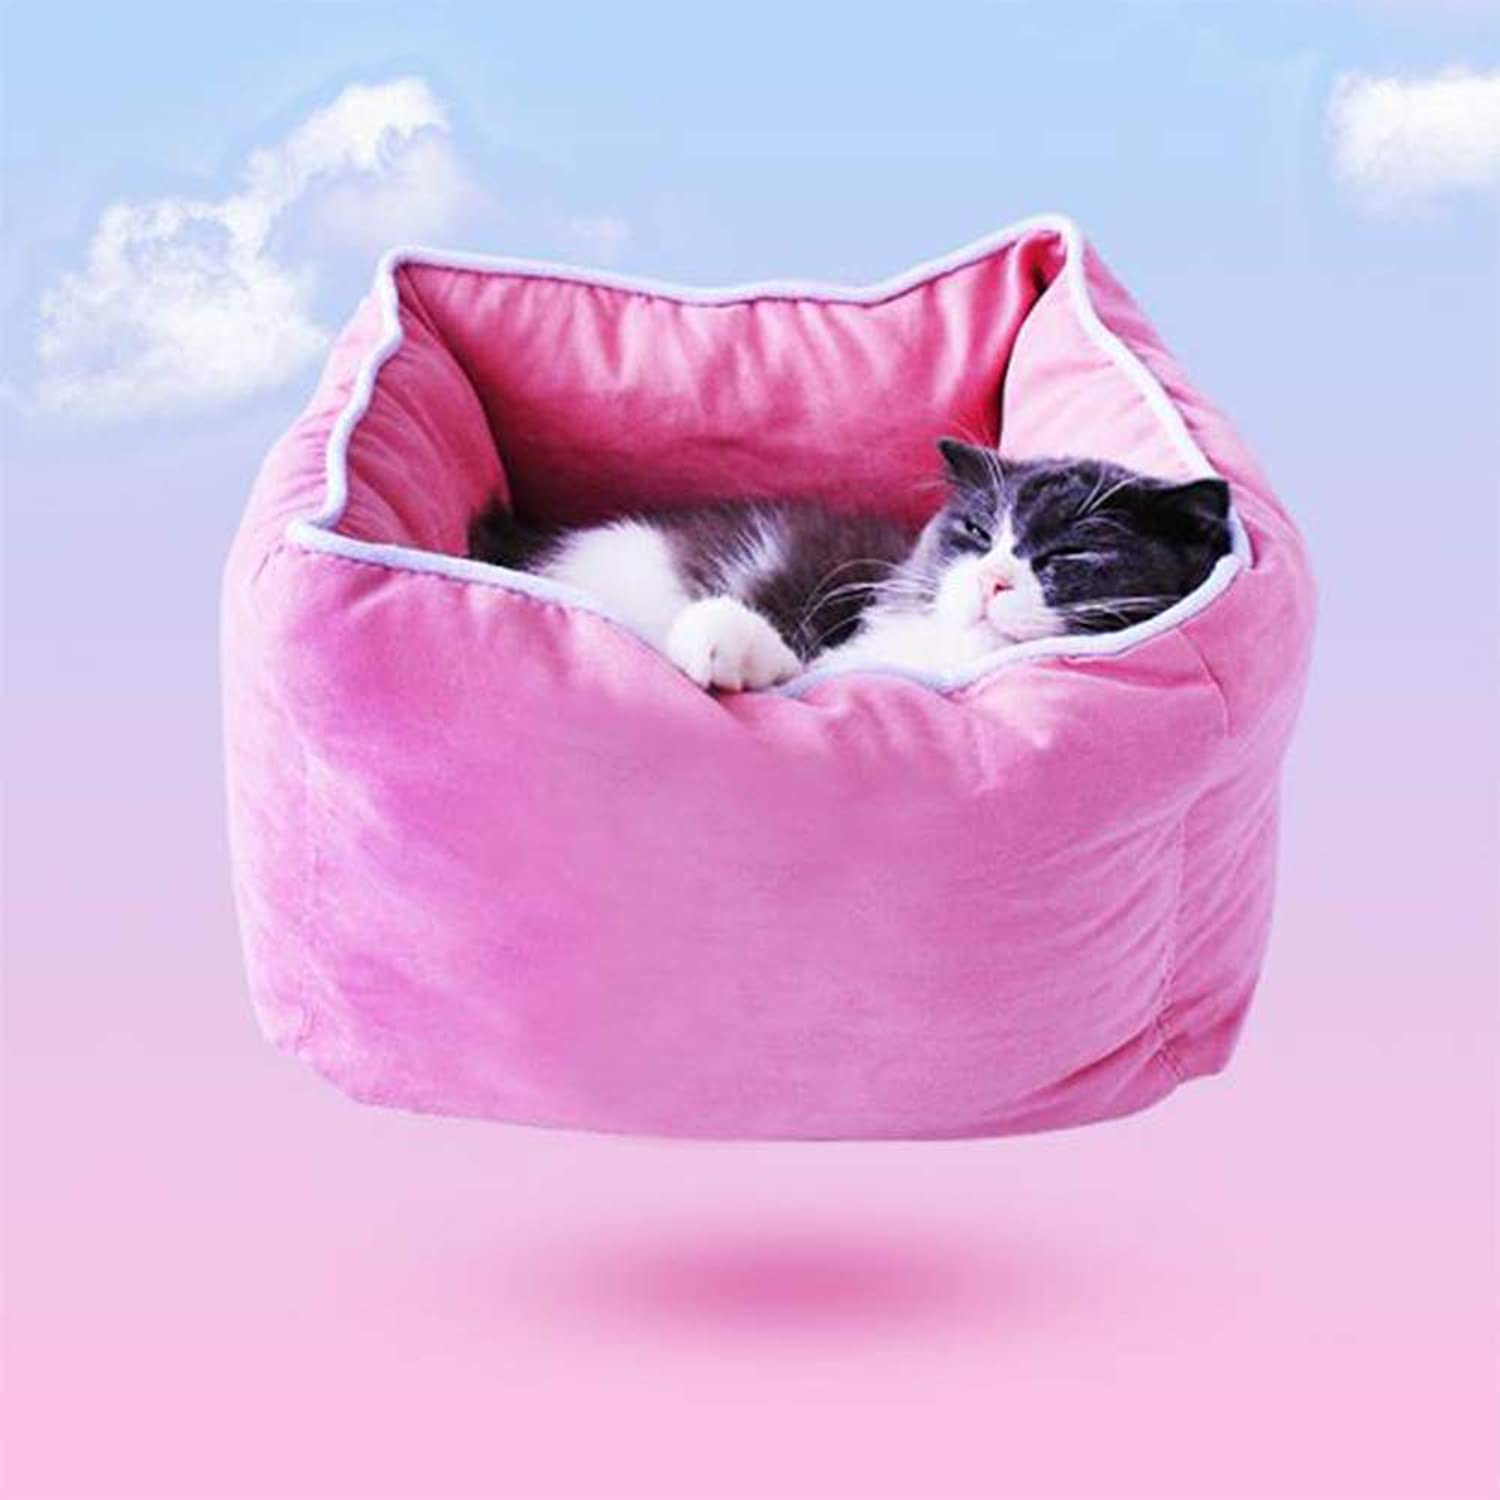 QBL (3 piece set) pet bed quilt cover and pillow comfortable and soft fully washable pet bed kennel doghouse